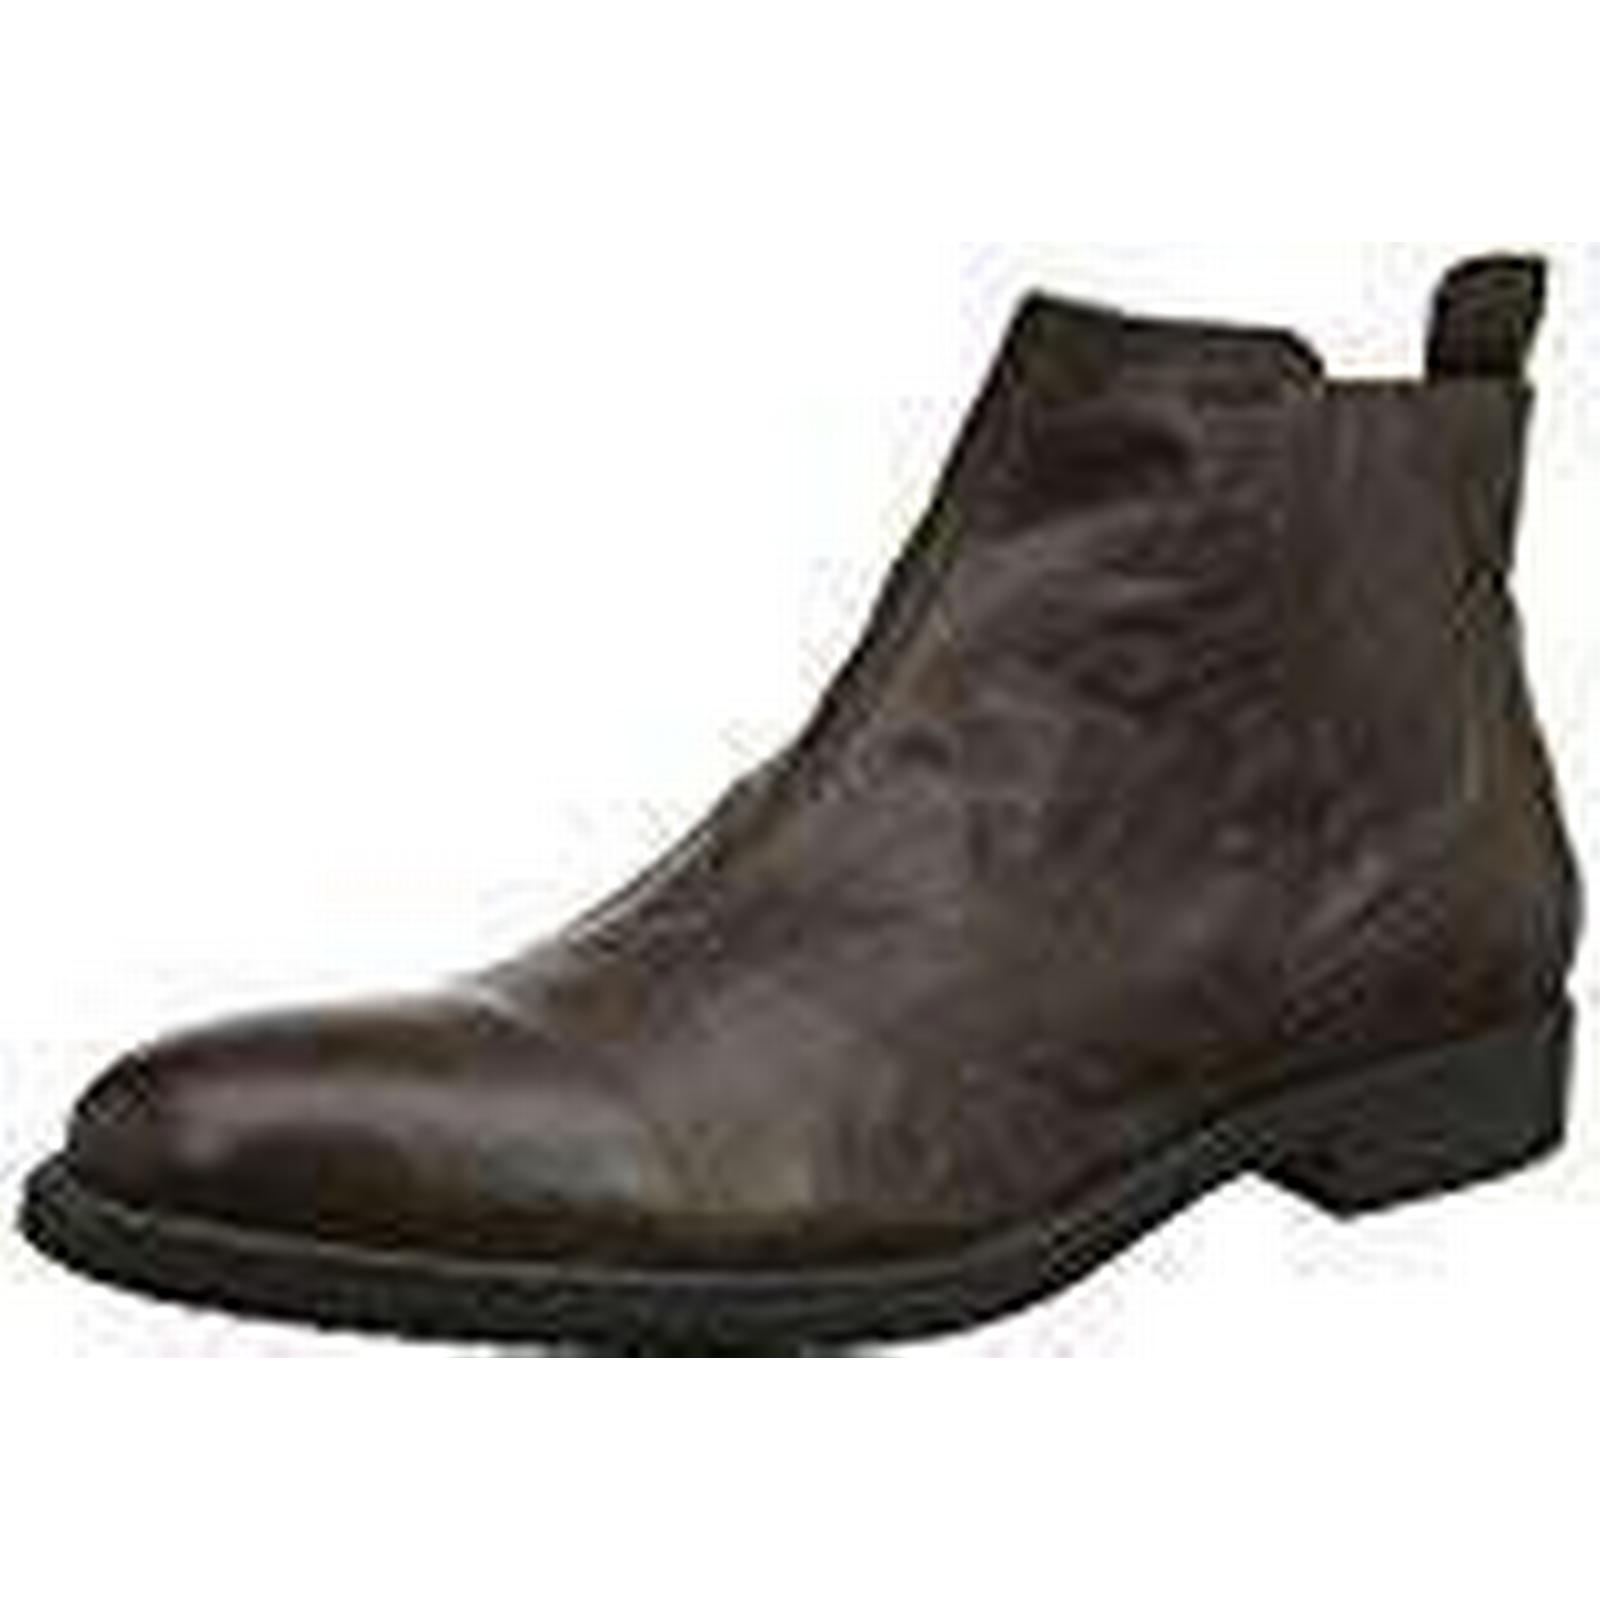 Geox Men's Boots, U Jaylon B Classic Boots, Men's Brown (Chocolate C6005), 10.5 UK 10.5 UK 804c05